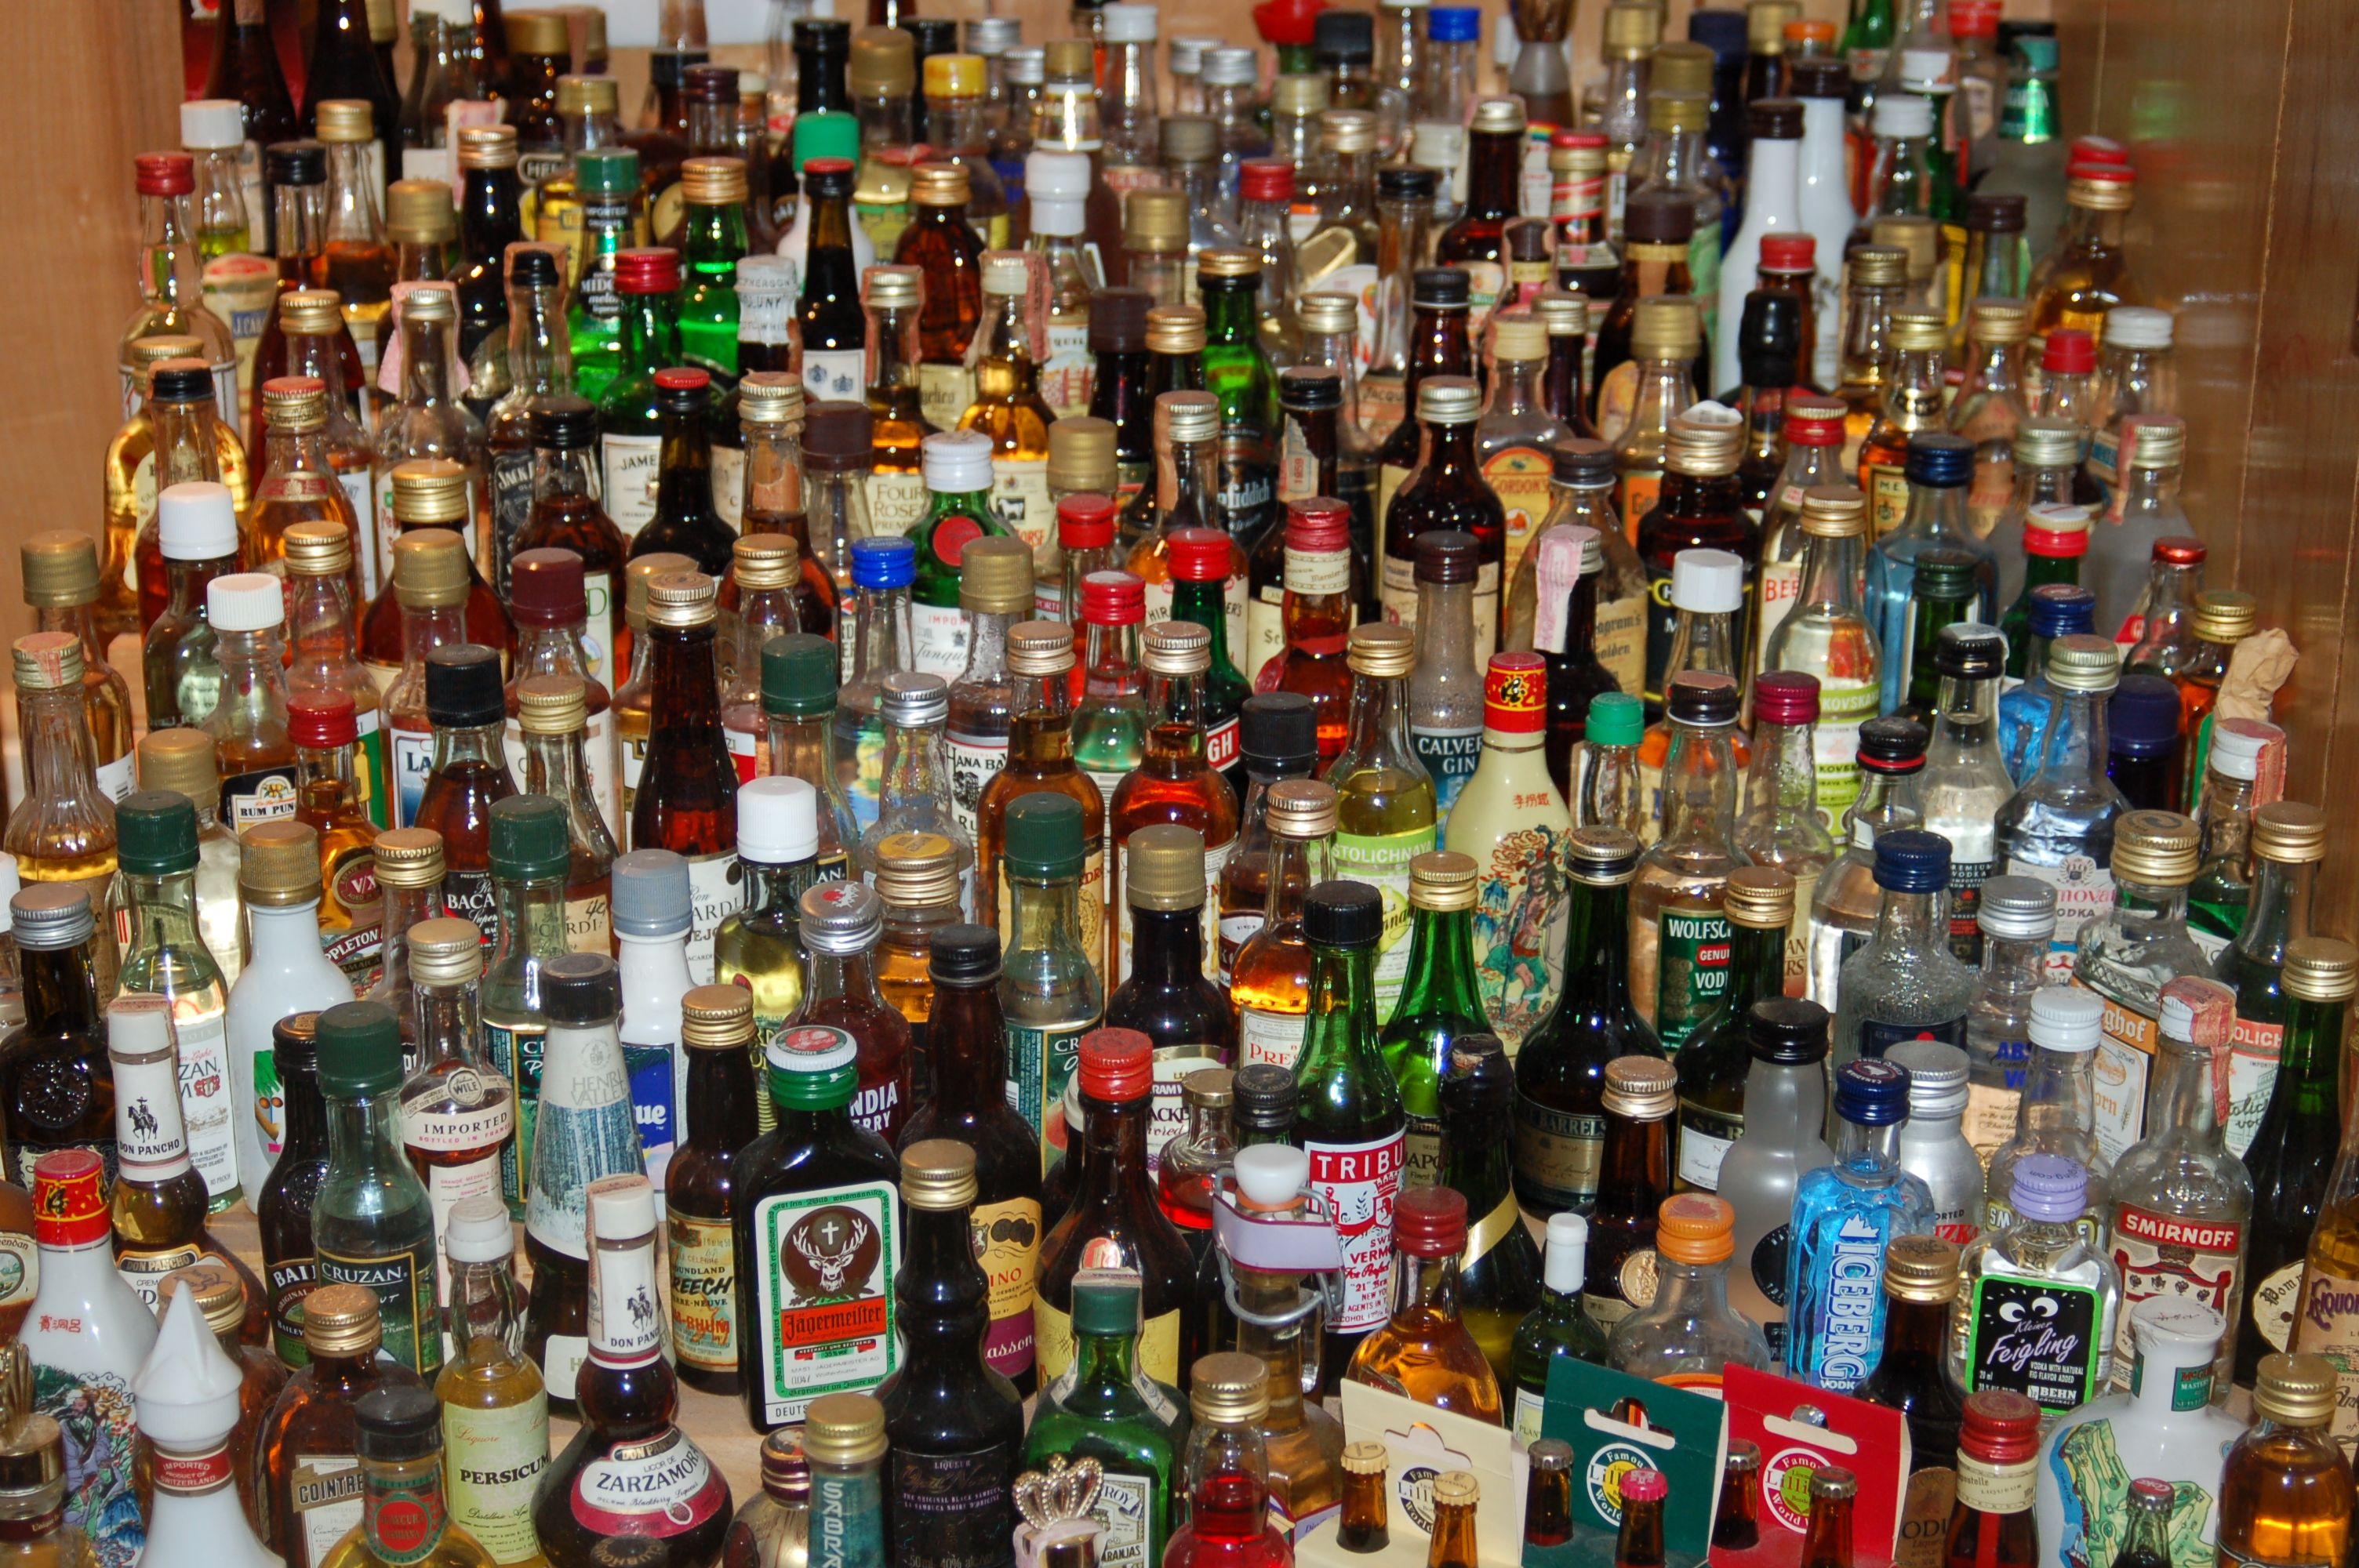 100+ Drinking Songs – I'll Drink To That! | Stuff to Buy